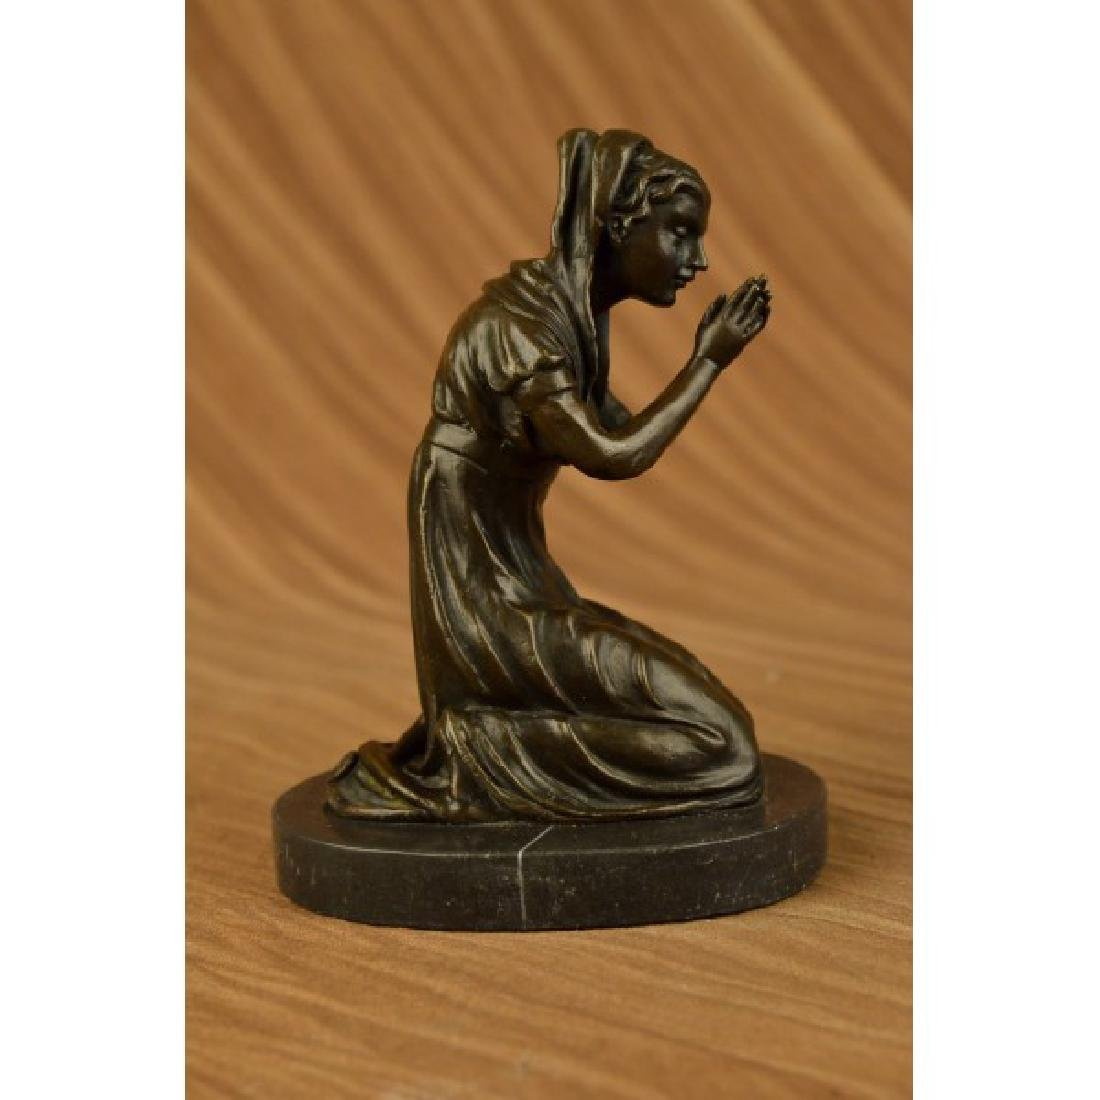 Our Blessed Mother Virgin Mary Praying Bronze Sculpture